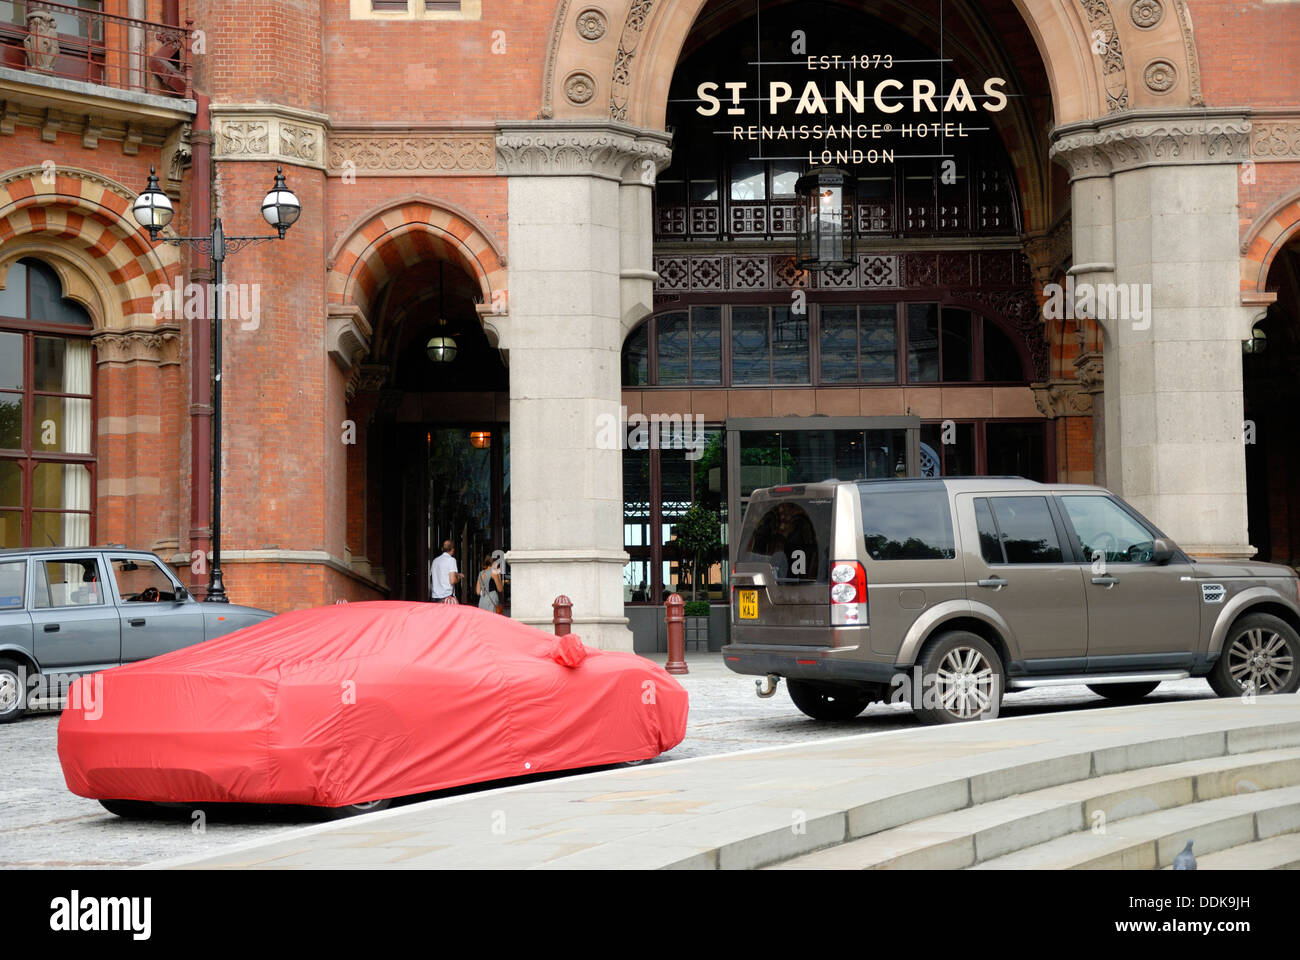 London, England, UK. Car under red cover outside St Pancras Station - Stock Image